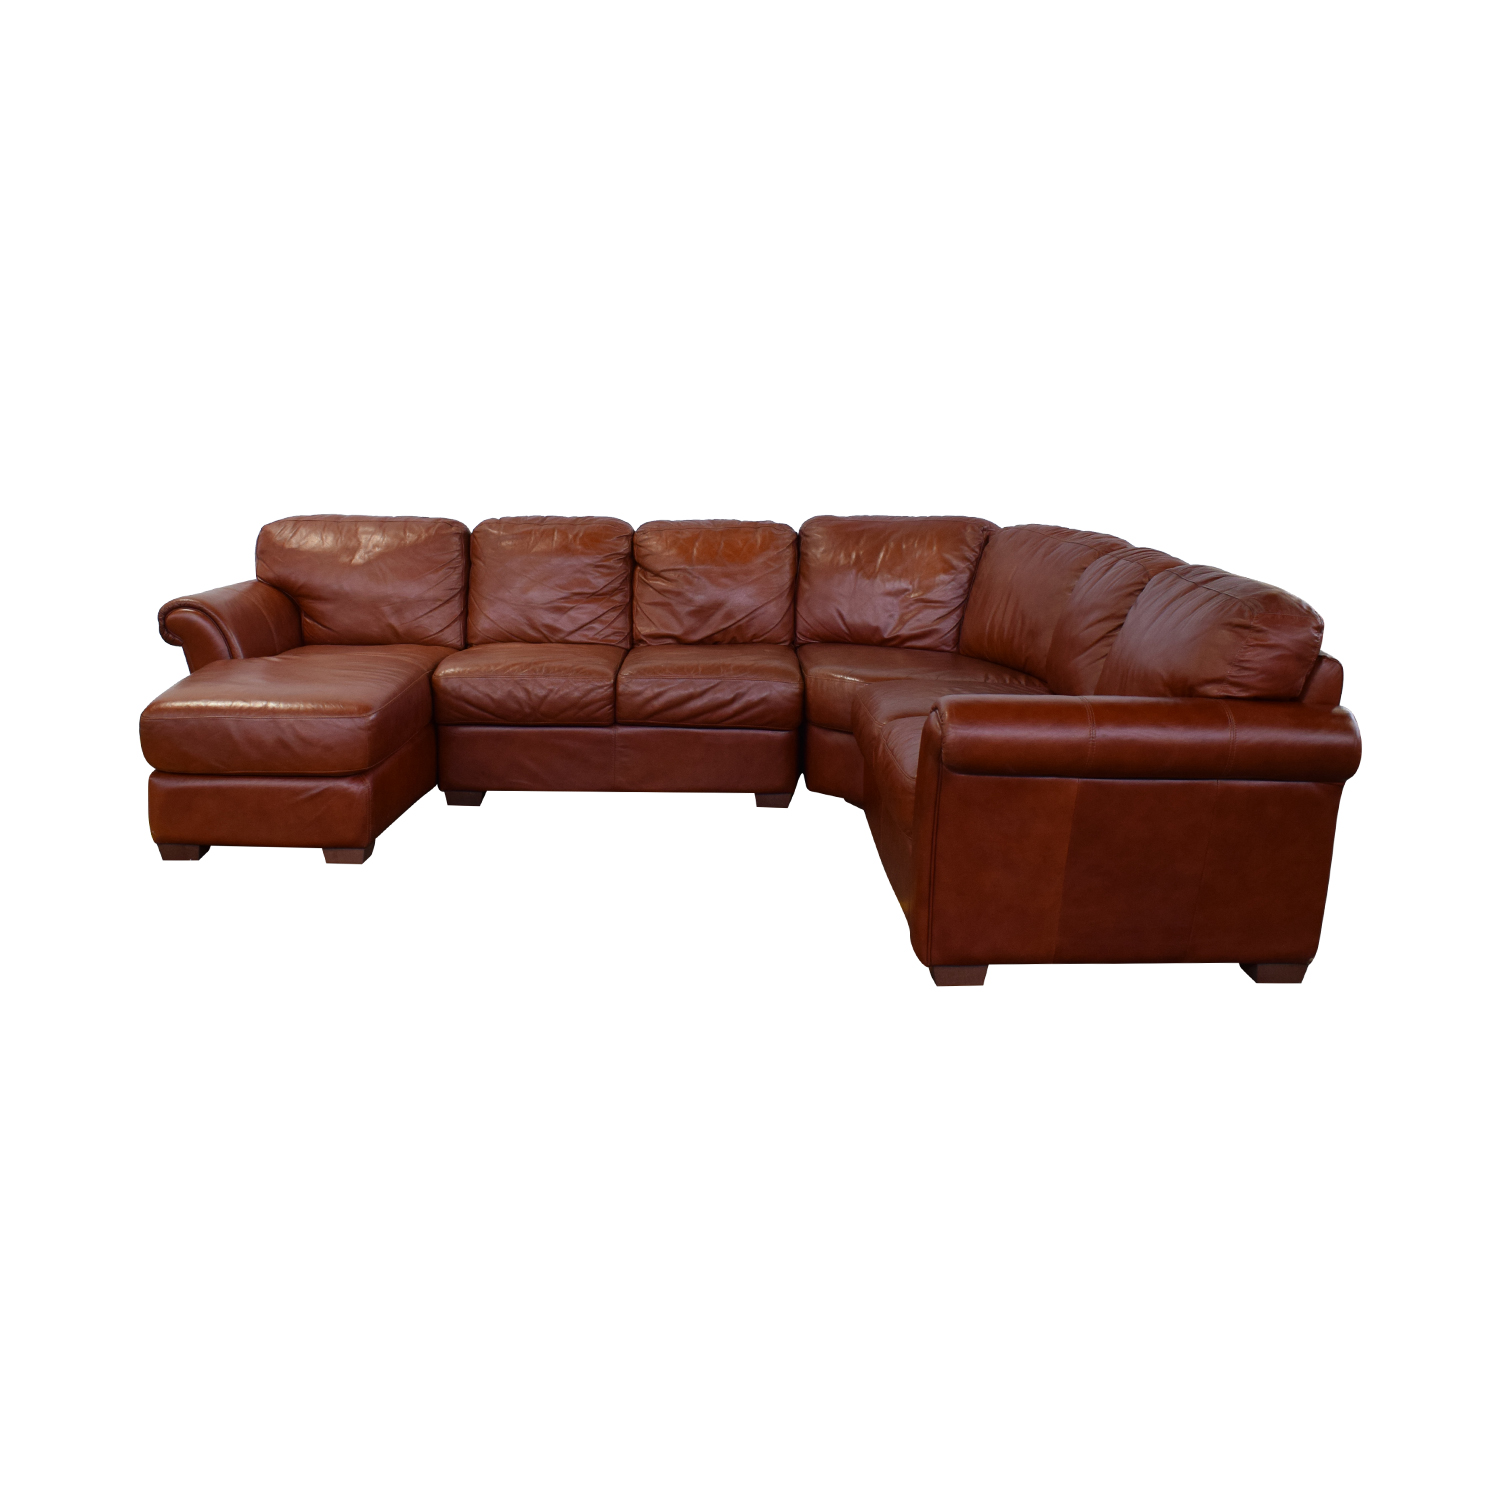 Chateau d'Ax Chateau d'Ax Leather Sectional nyc